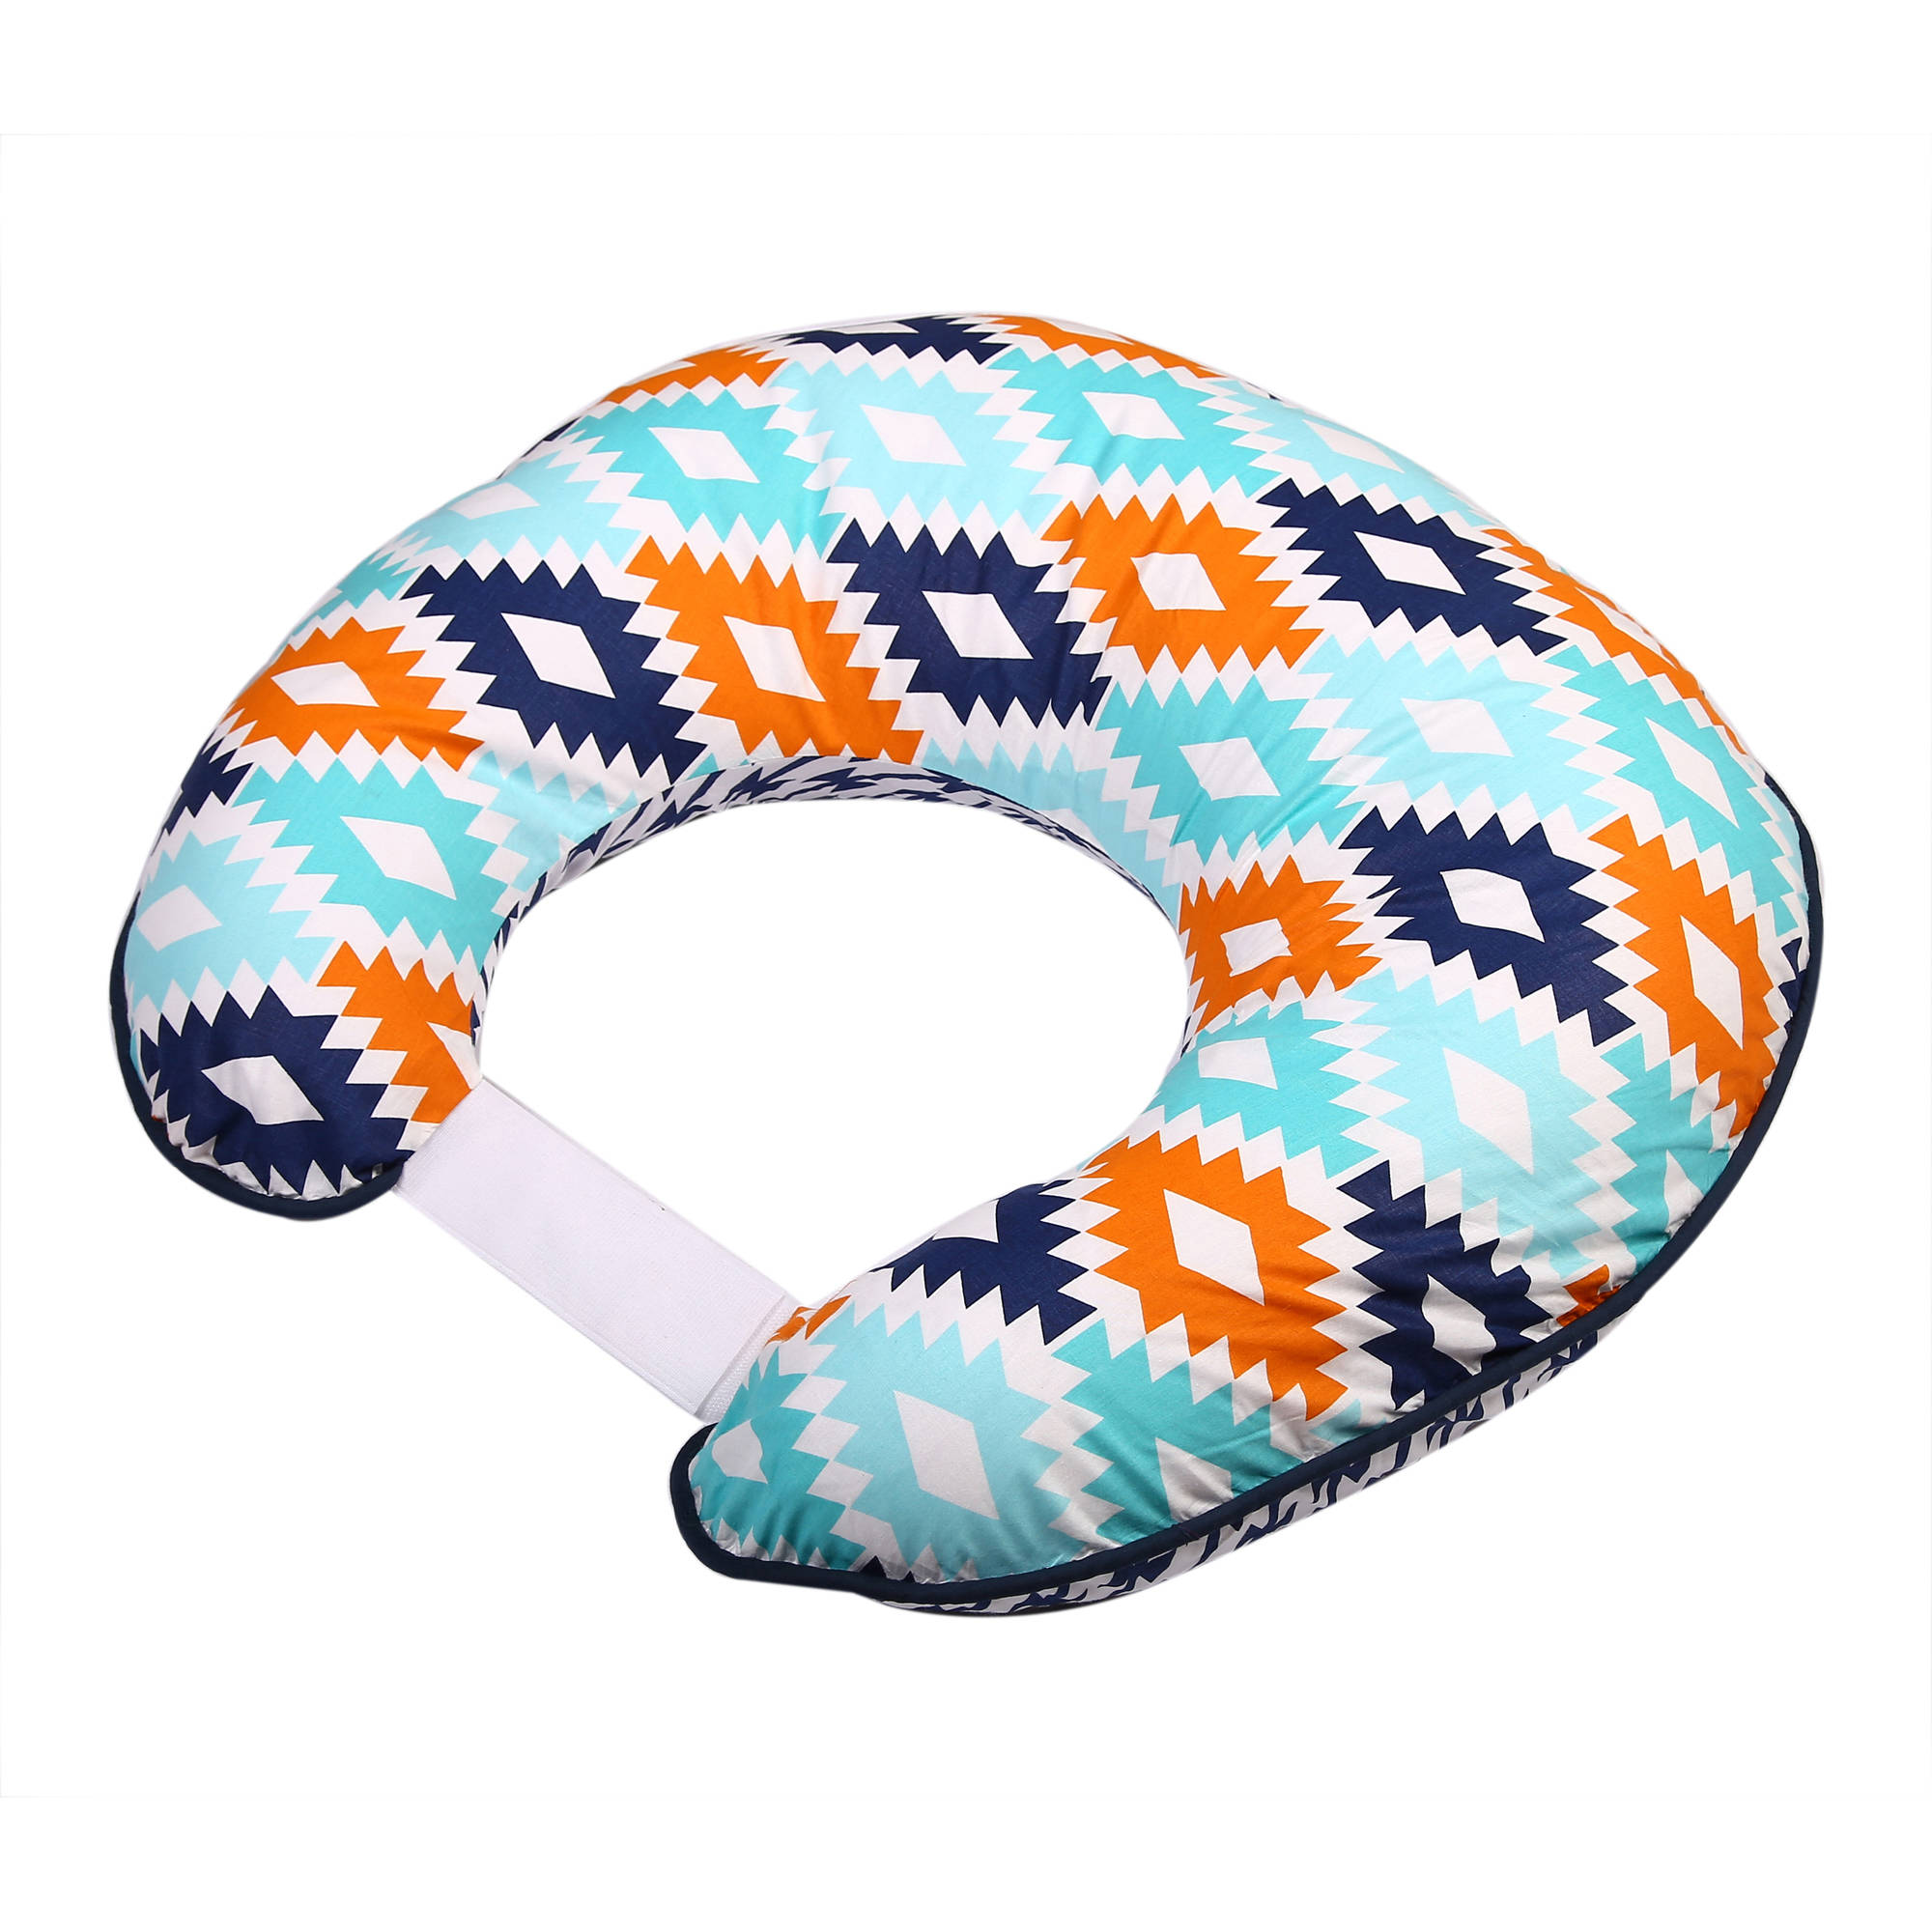 Bacati - Liam Aztec Aqua/Orange/Navy Nursing Pillow Cover fits perfectly only Bacati - Hugster Nursing Pillow